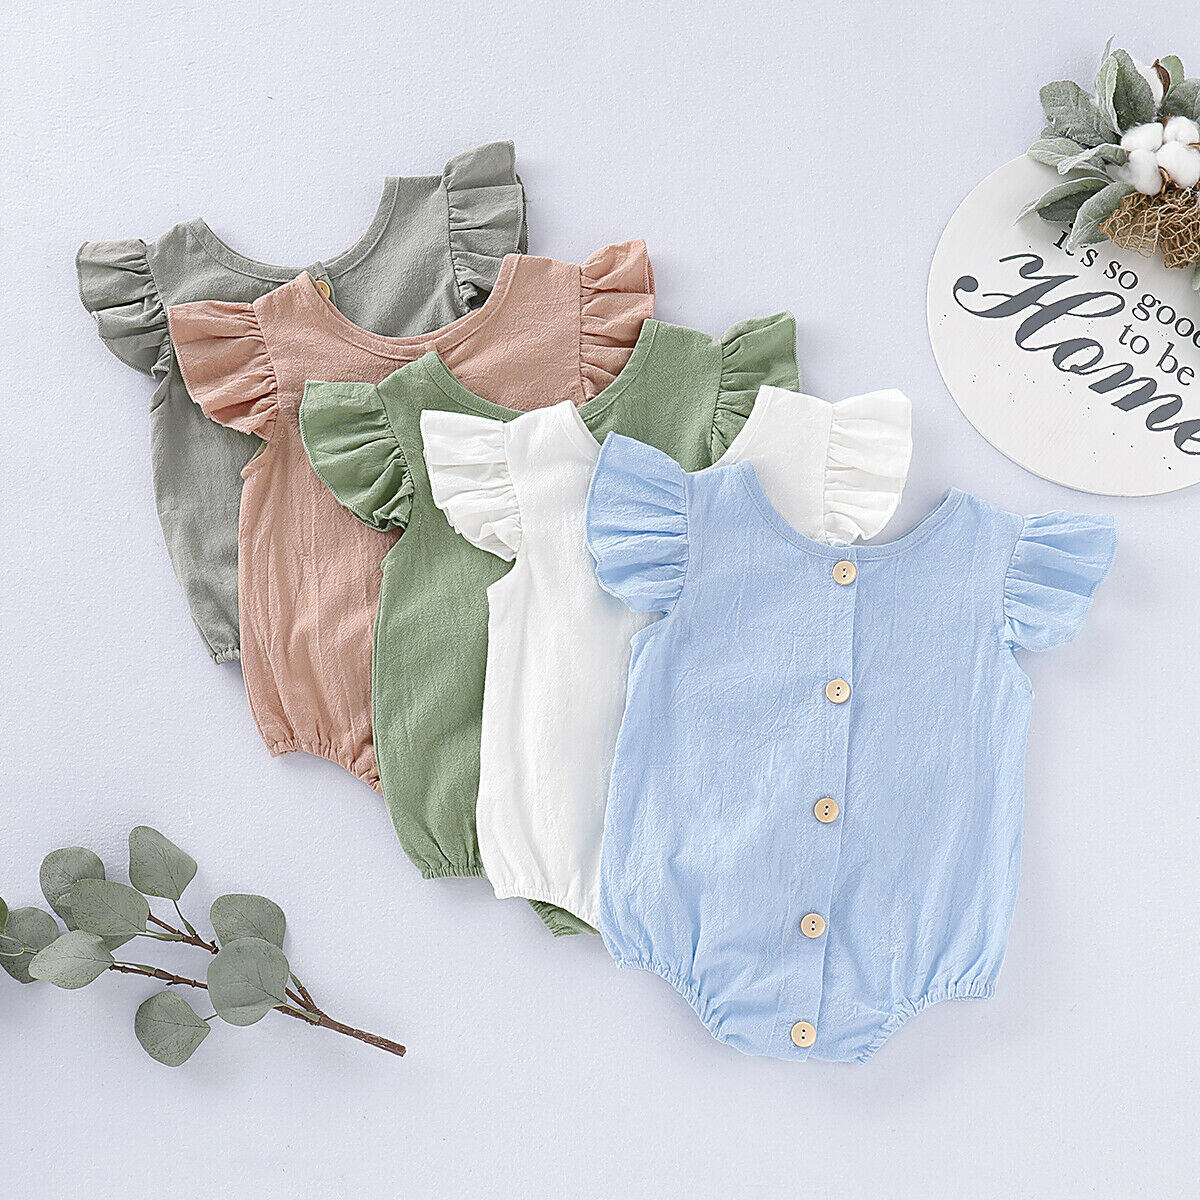 2019 New Infant Newborn Baby Girls Linen Cotton   Romper   Flying Sleeve Solid Color Jumpsuit One-Piece Summer Outfit 0-24M